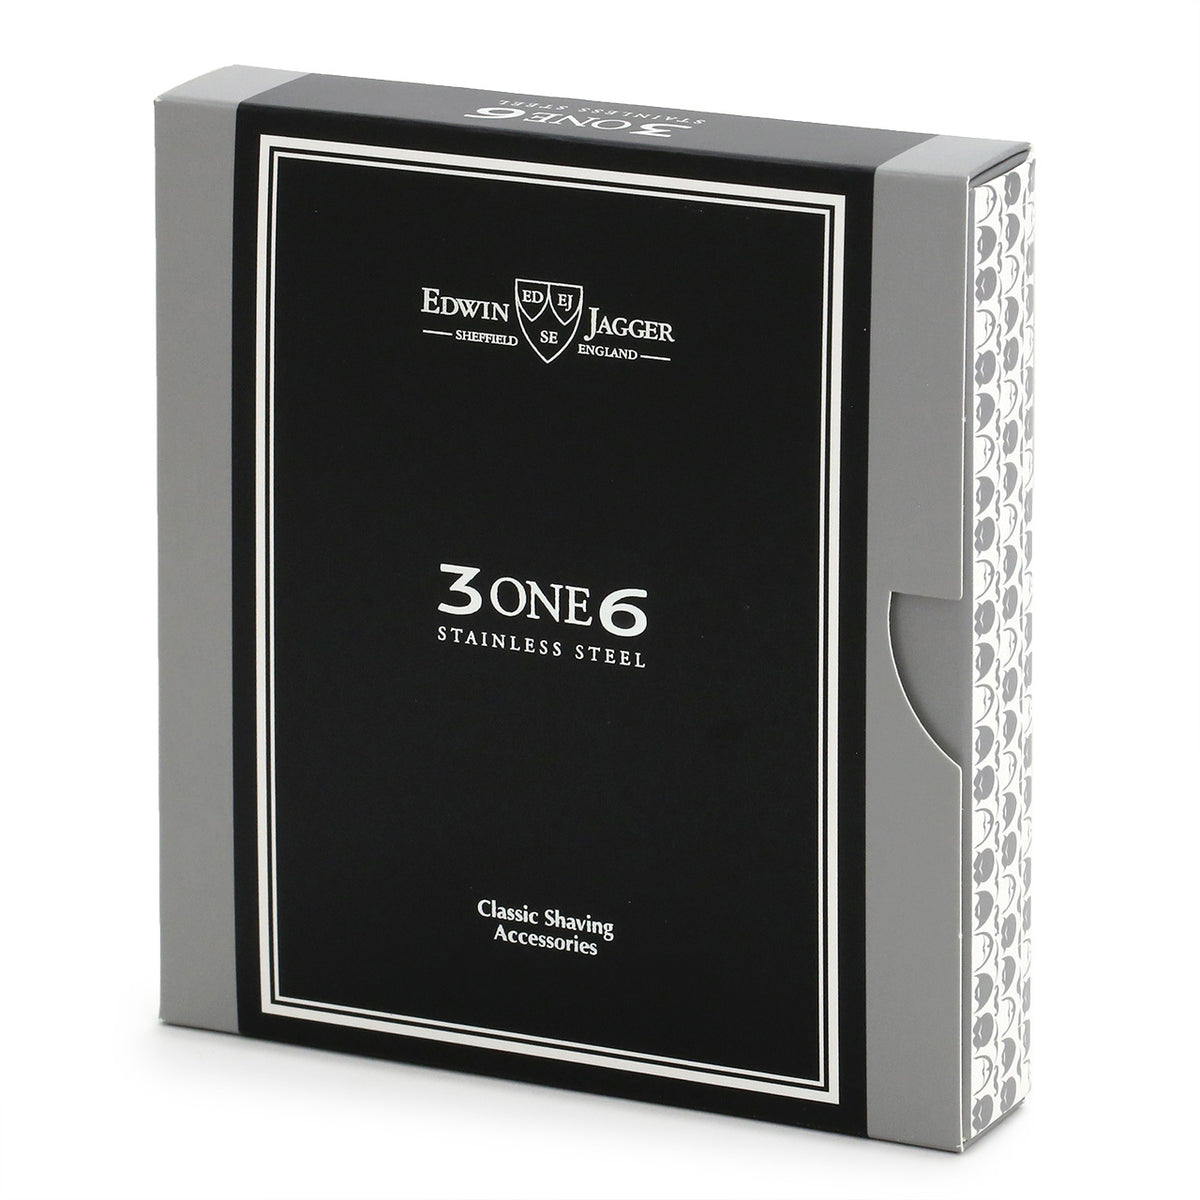 Edwin Jagger 3ONE6 Stainless Steel Safety Razor packaging